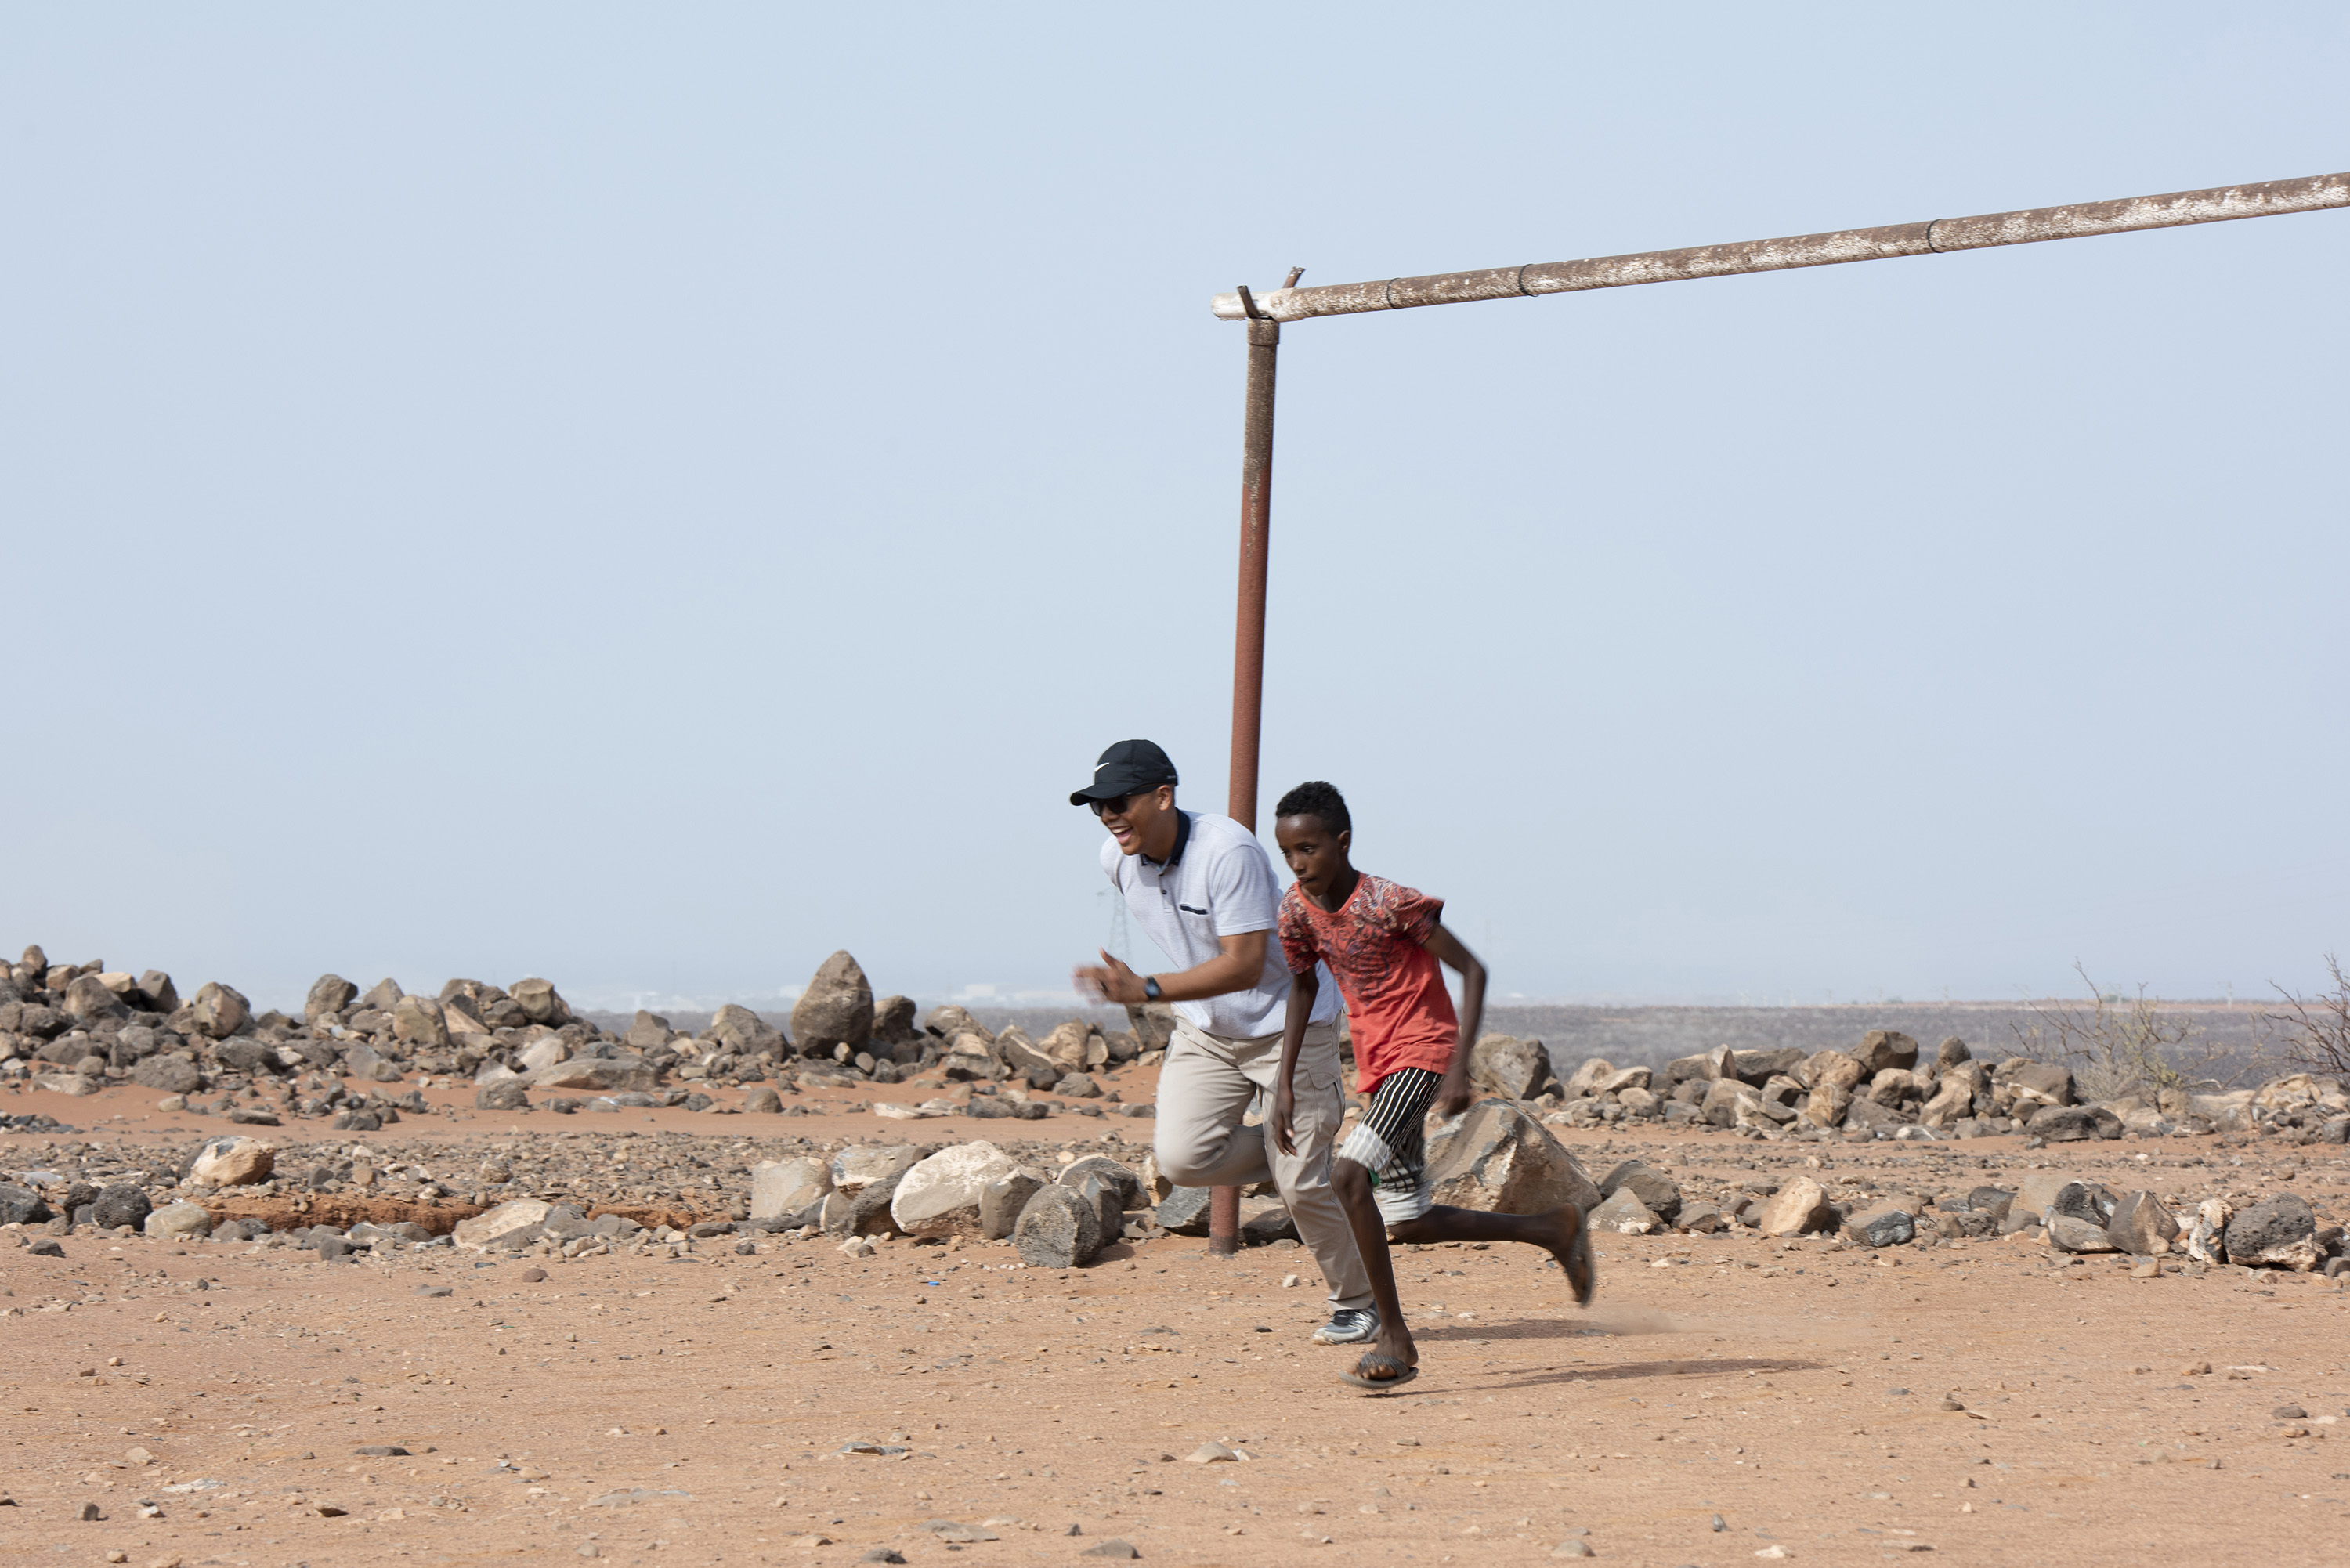 U.S. Air Force 1st Lt. Darren Domingo, officer in charge, Combat Camera, assigned to Combined Joint Task Force - Horn of Africa, races with a child from the local village outside of Chebelley Village, Djibouti, Aug. 3, 2018. Domingo was one of 30 service members participating in an outreach event organized by the 404th Civil Affairs Battalion. (U.S. Air National Guard photo by Master Sgt. Sarah Mattison)